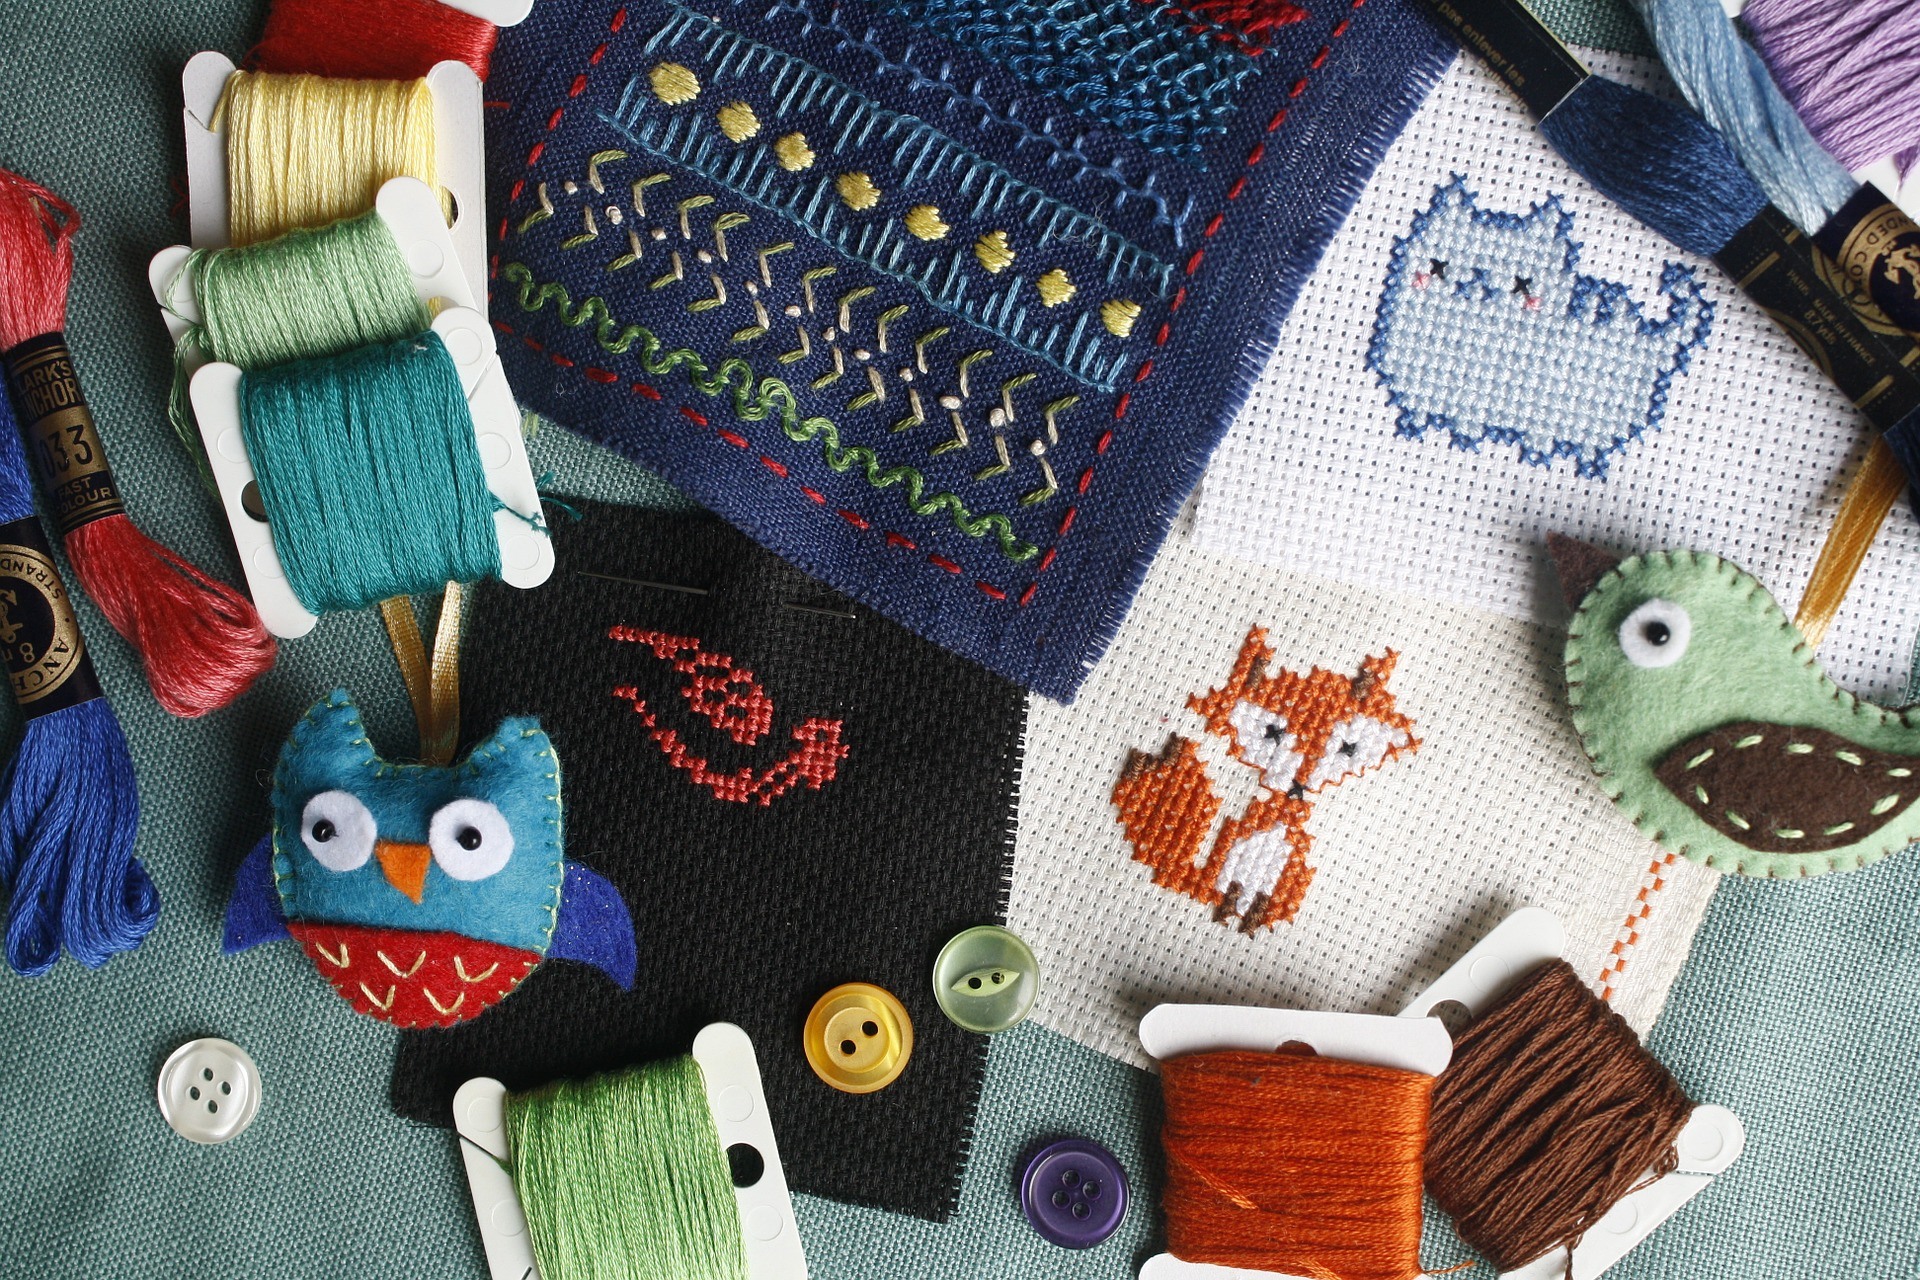 Thursday's Threads Cross-Stitch Class